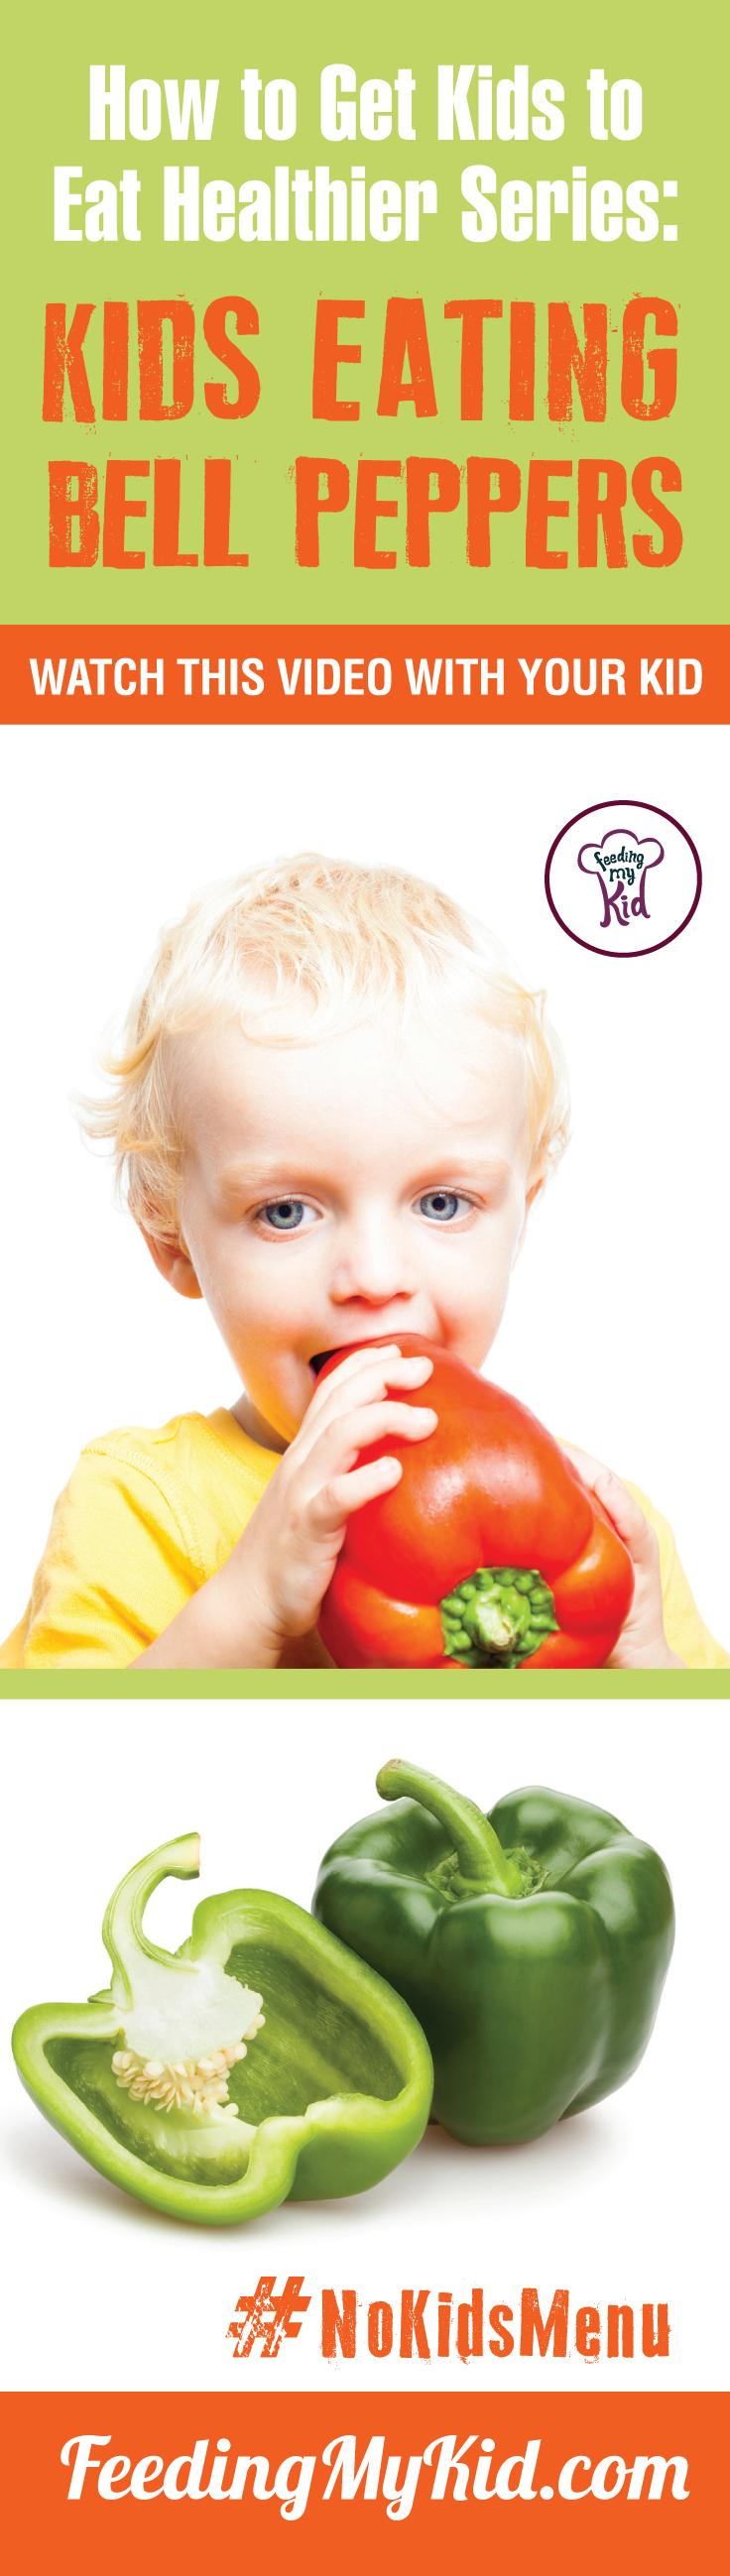 Want your kids to eat Bell Peppers? Teach your kids how to eat more vegetables and fruits. Watch these videos with your kids of kids eating veggies and fruits and get your kids to eat veggies and fruits. Find out how it works here. Feeding My Kid is a filled with all the information you need about how to raise your kids, from healthy tips to nutritious recipes. #pickyeating #getkidstoeat #BellPeppers #nokidsmenu